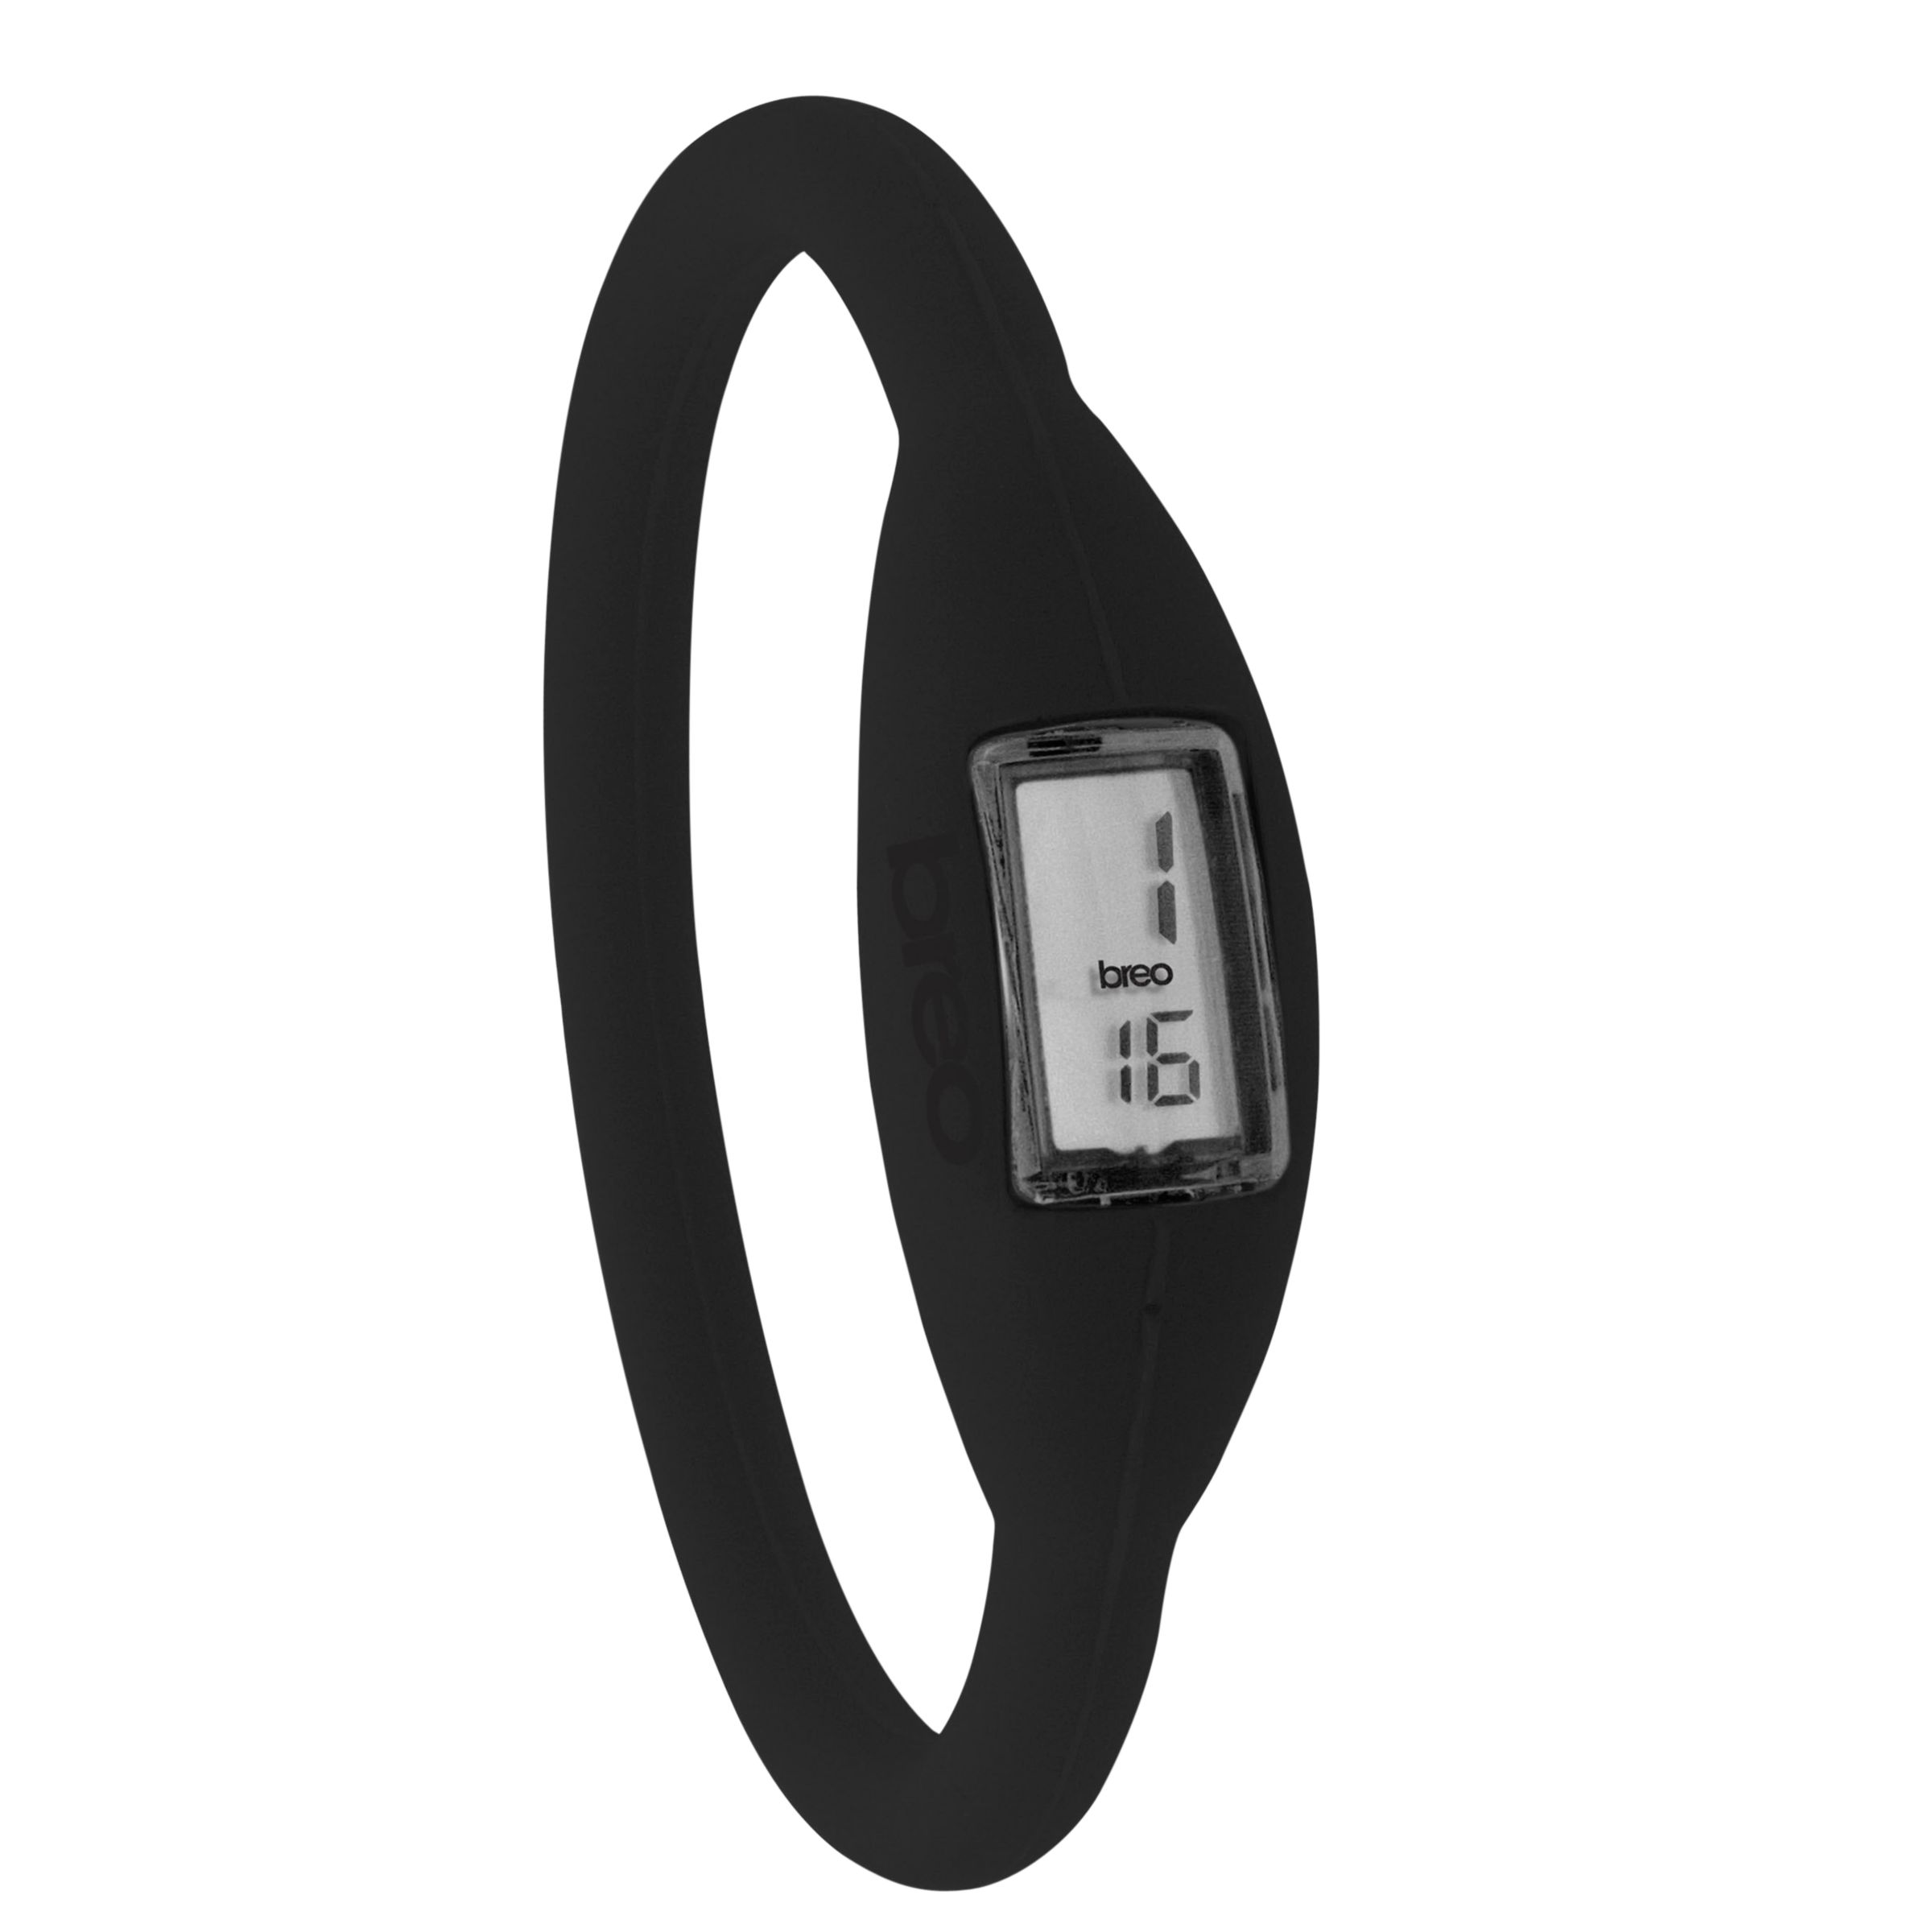 Breo Roam B-TI-RO7 Digital Sports Watch, Black